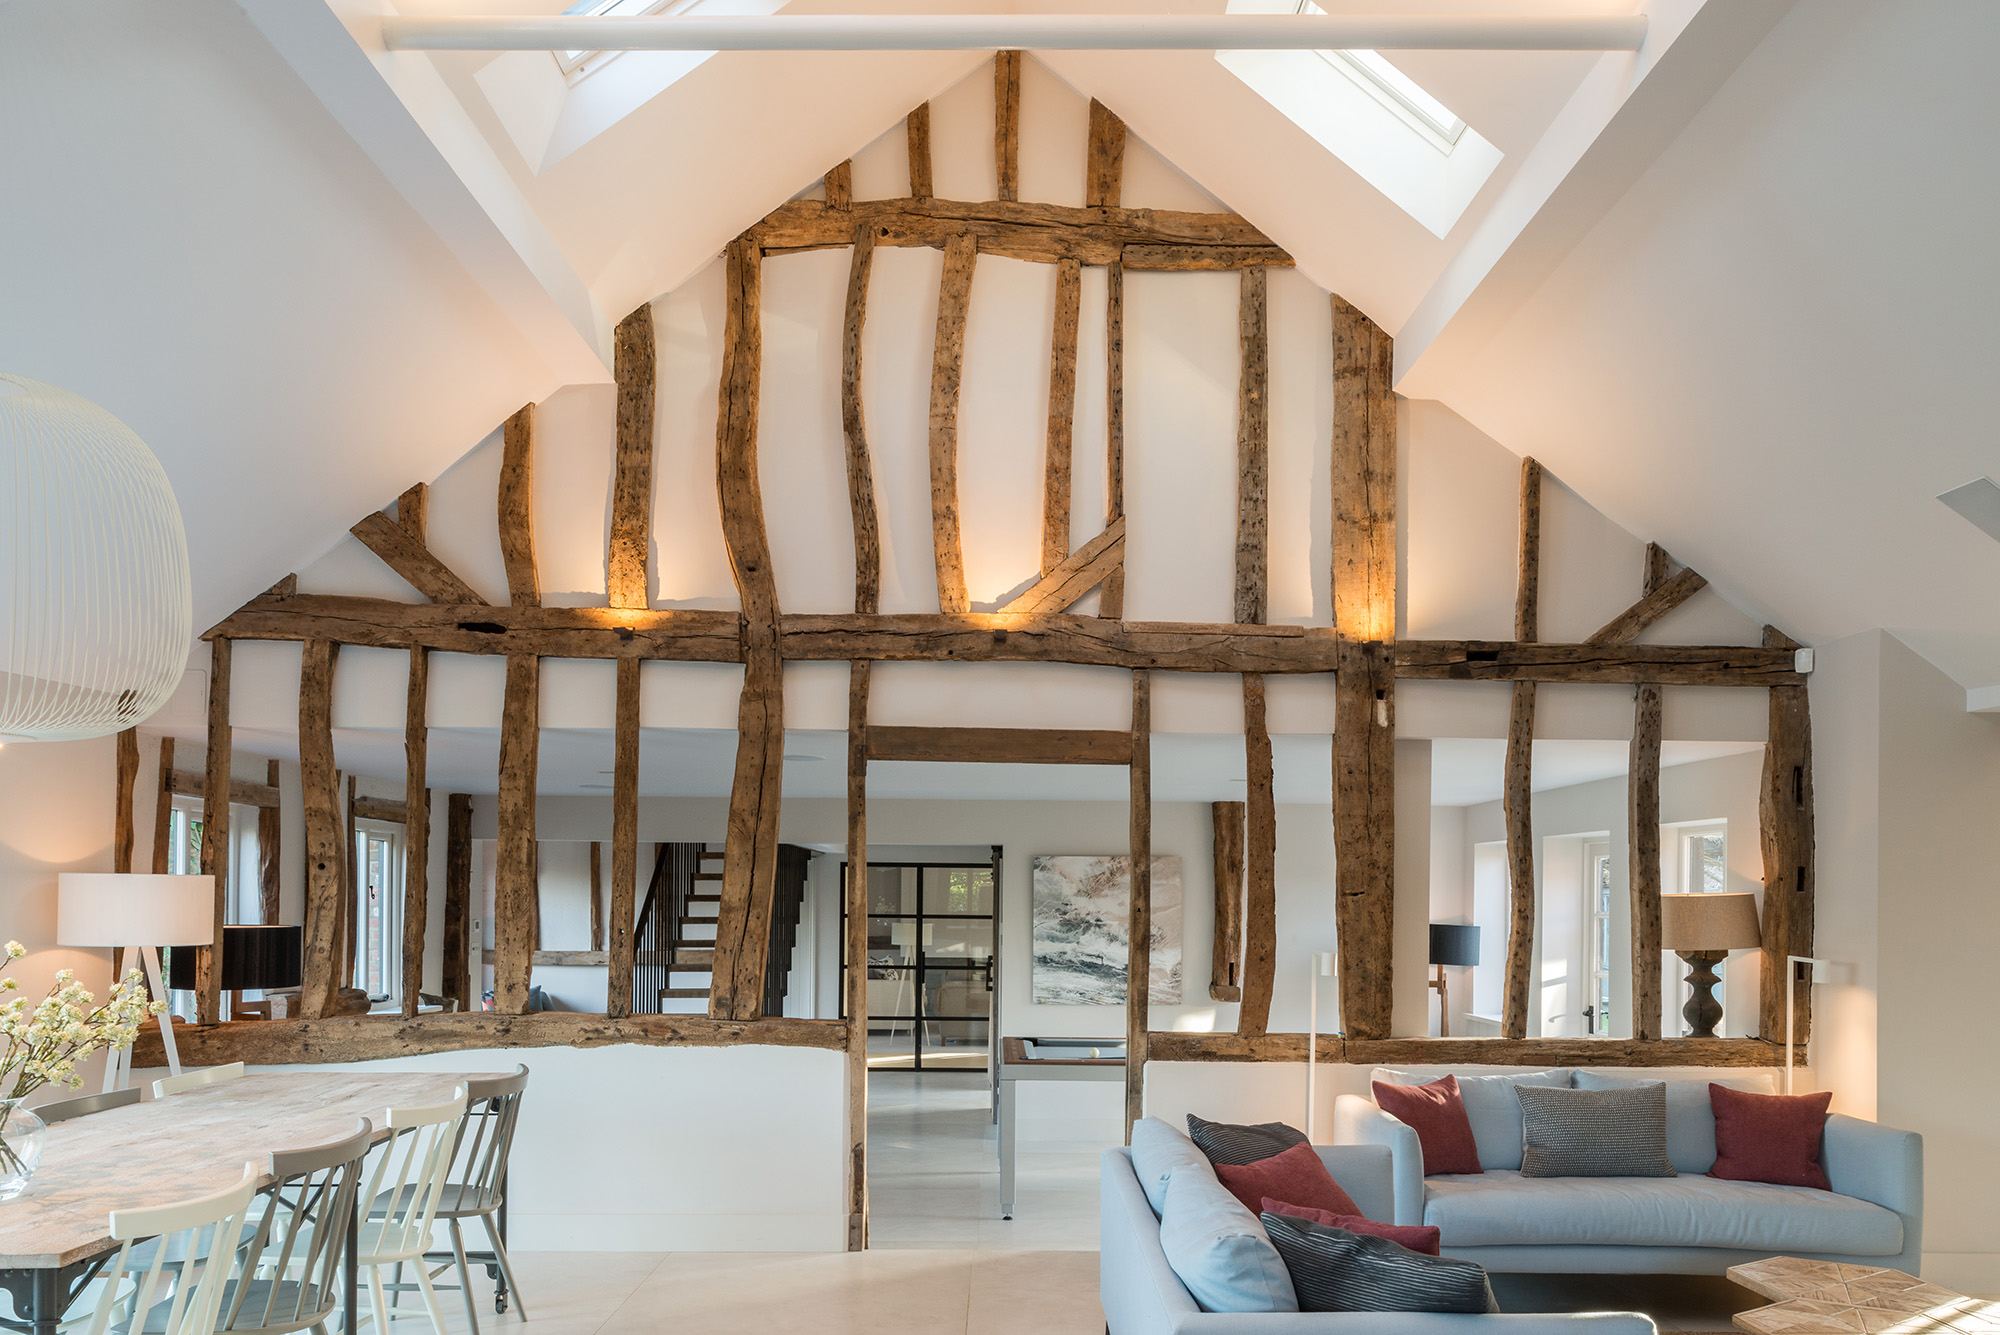 In this historic scheme, stunning original beams take centre stage. Image: Gresford Architects